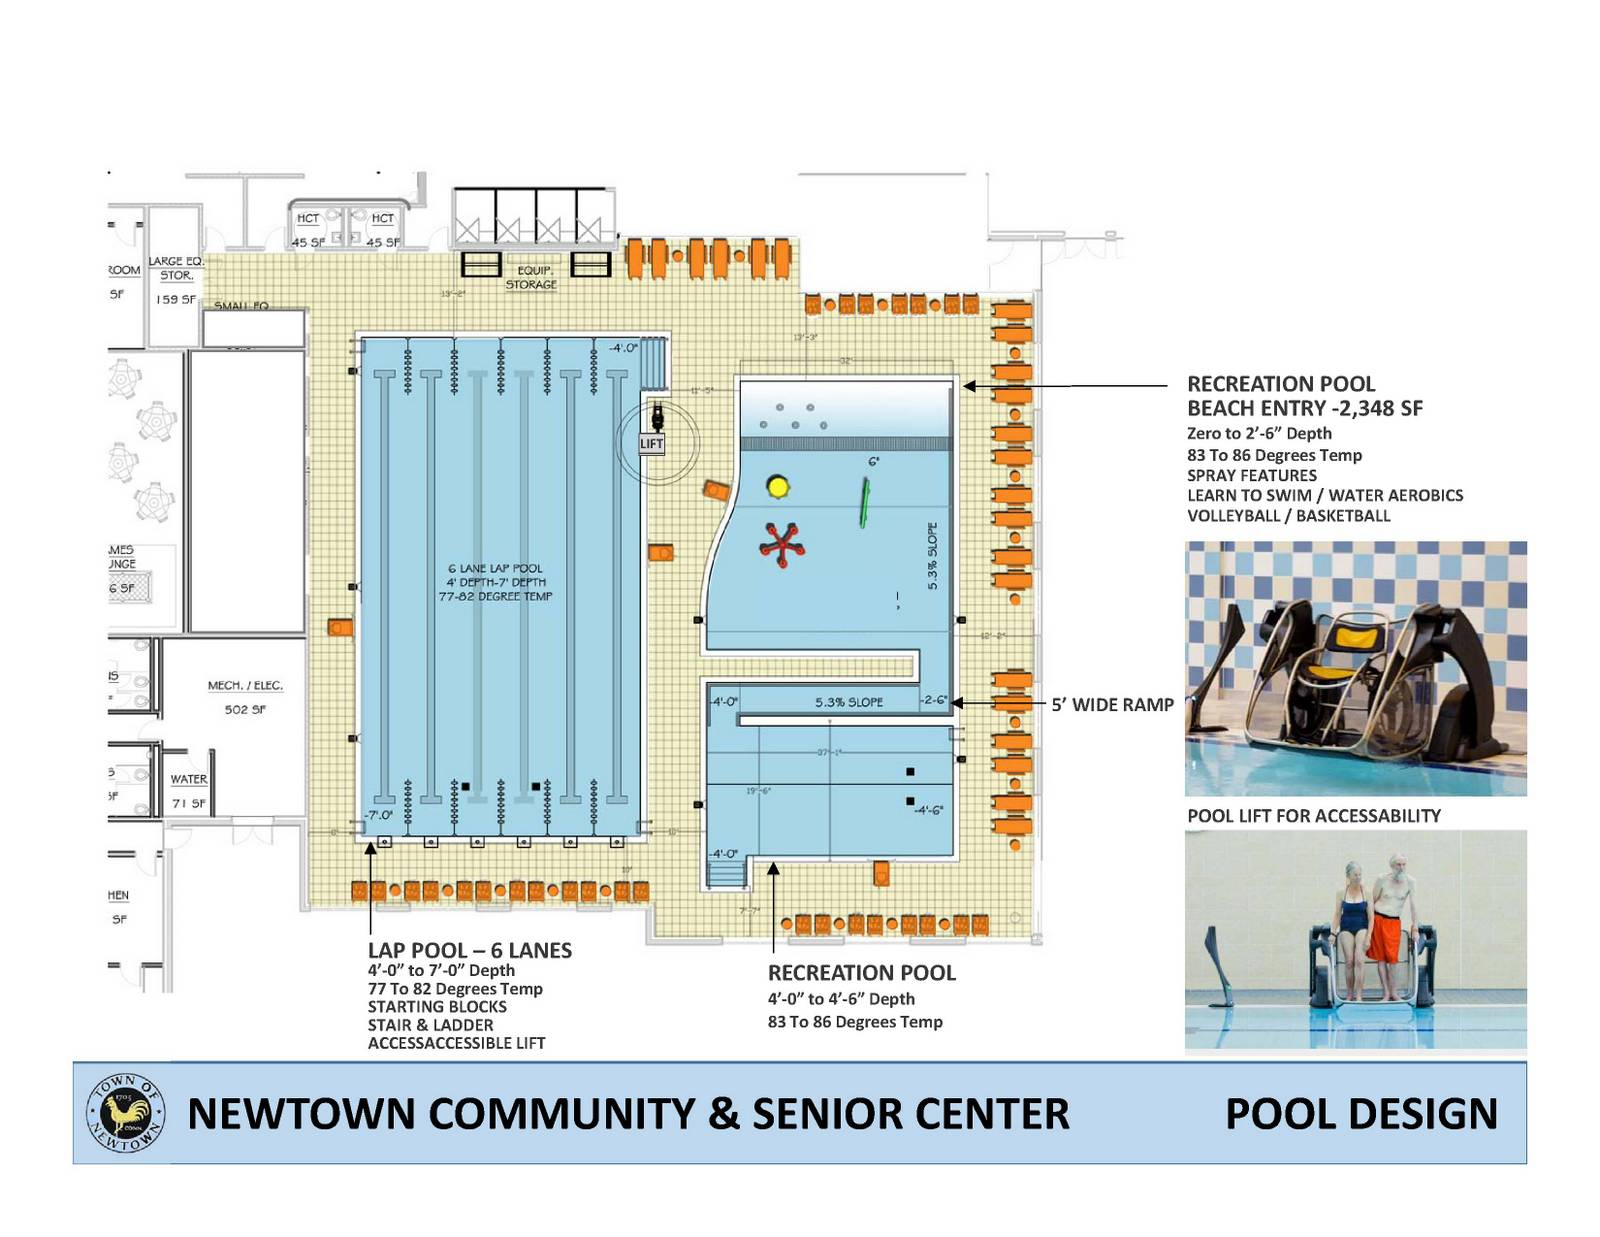 Community Pool Schematics Schematic Diagrams Center Senior Meetings Focus On Design Details Pizza Oven